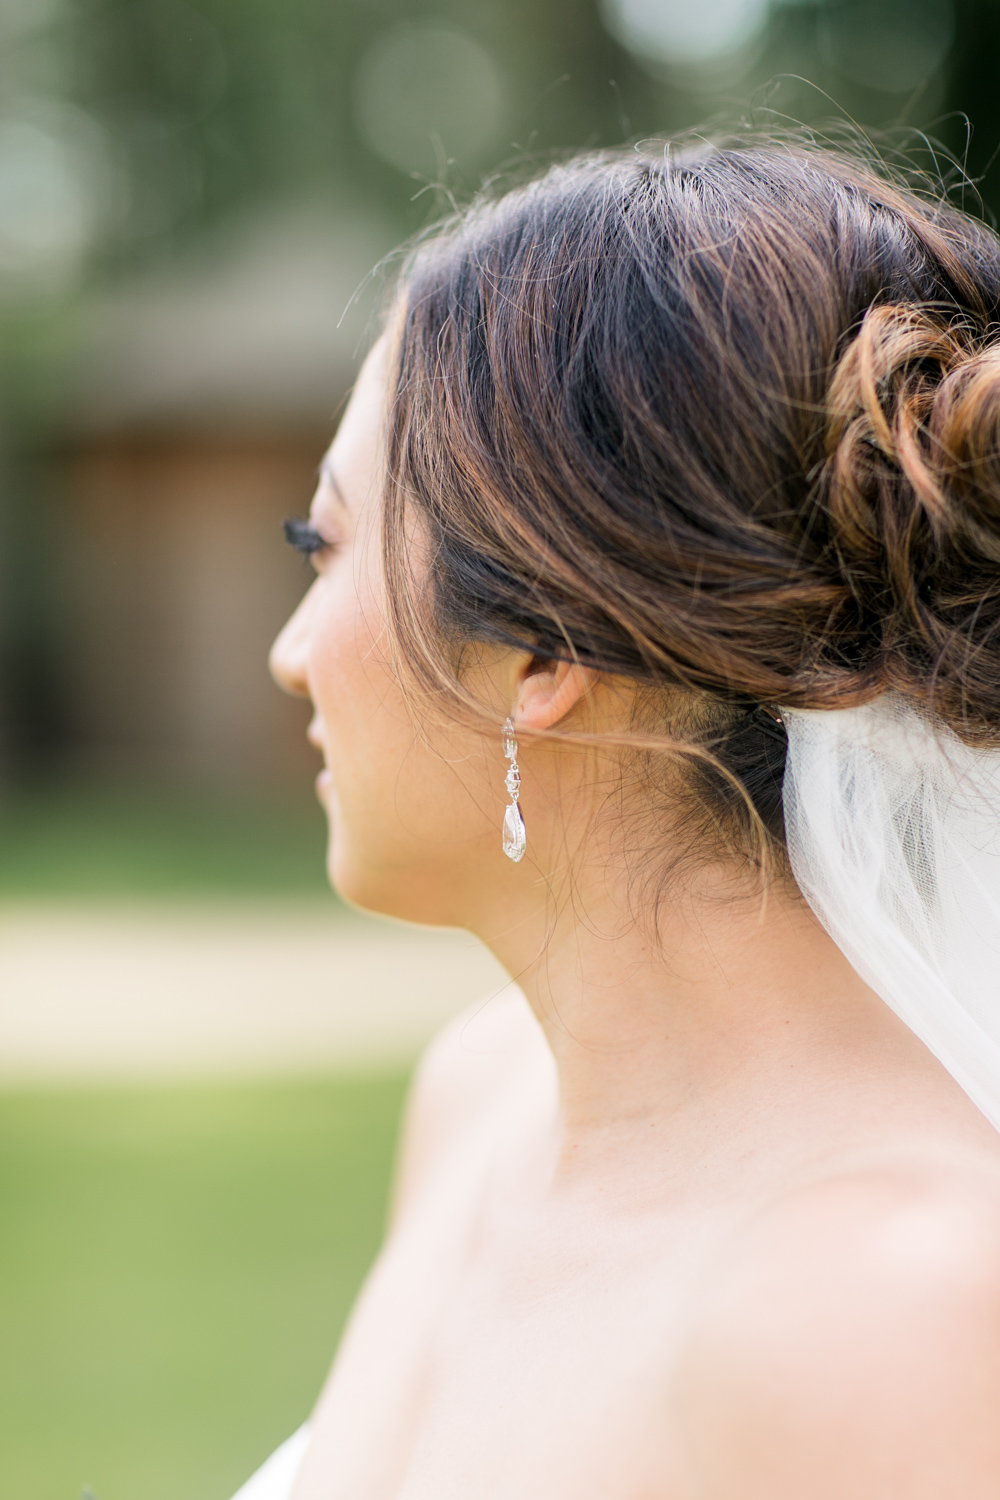 bride's earring detail showing off part of her up style hairdo bun and part of her veil and exposed shoulders